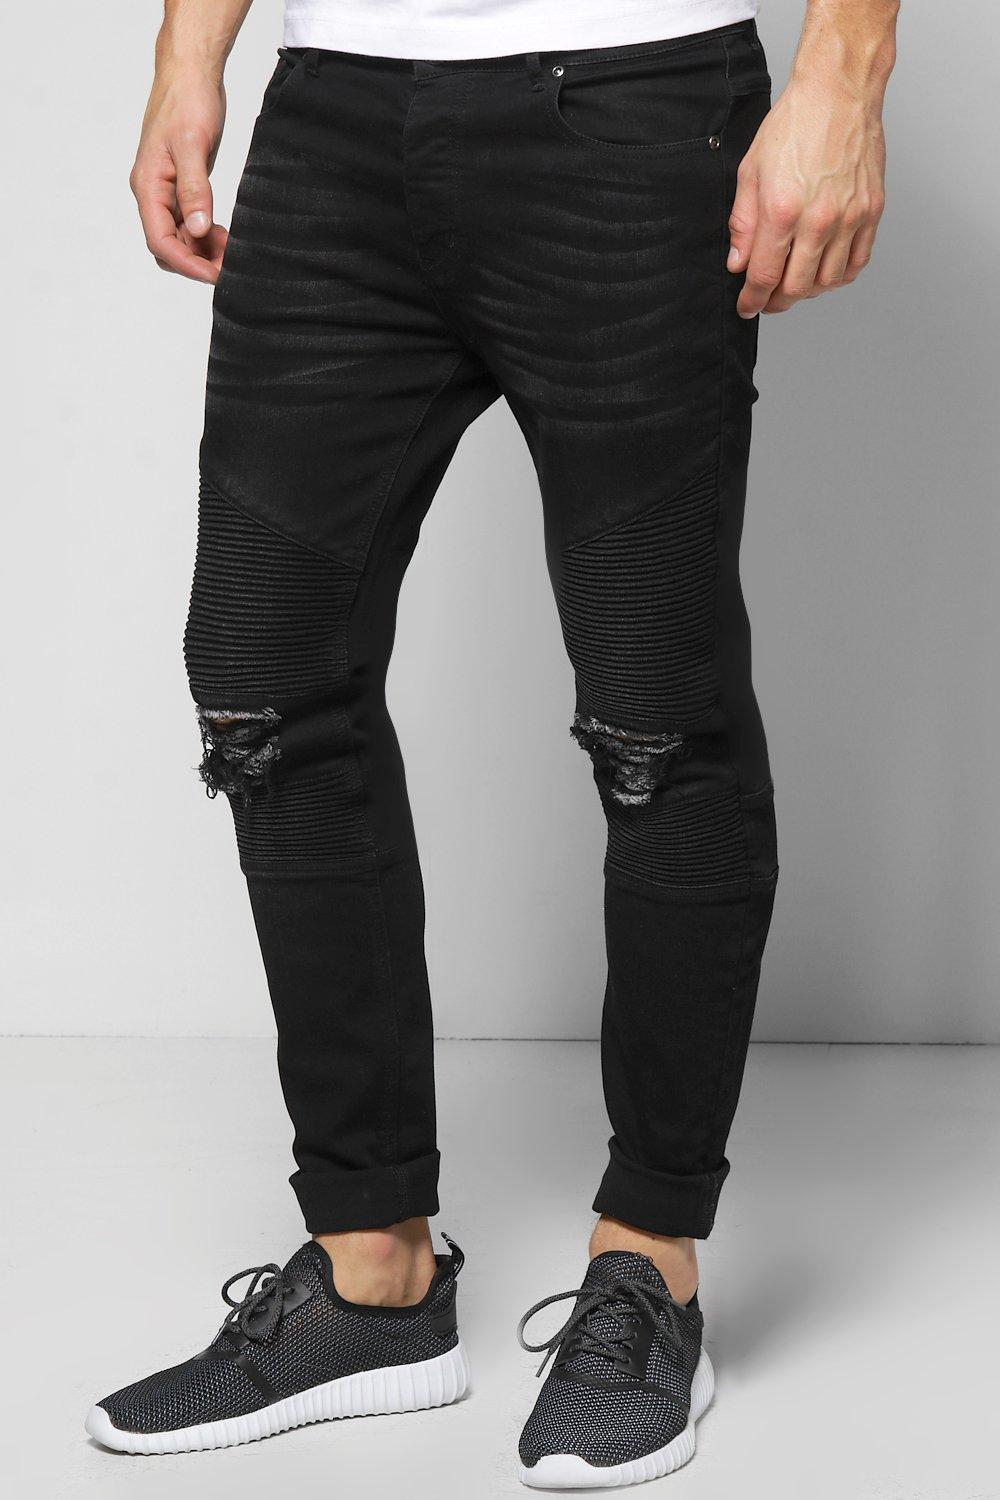 boohooMAN Washed Black Biker Detail Skinny Fit Jeans